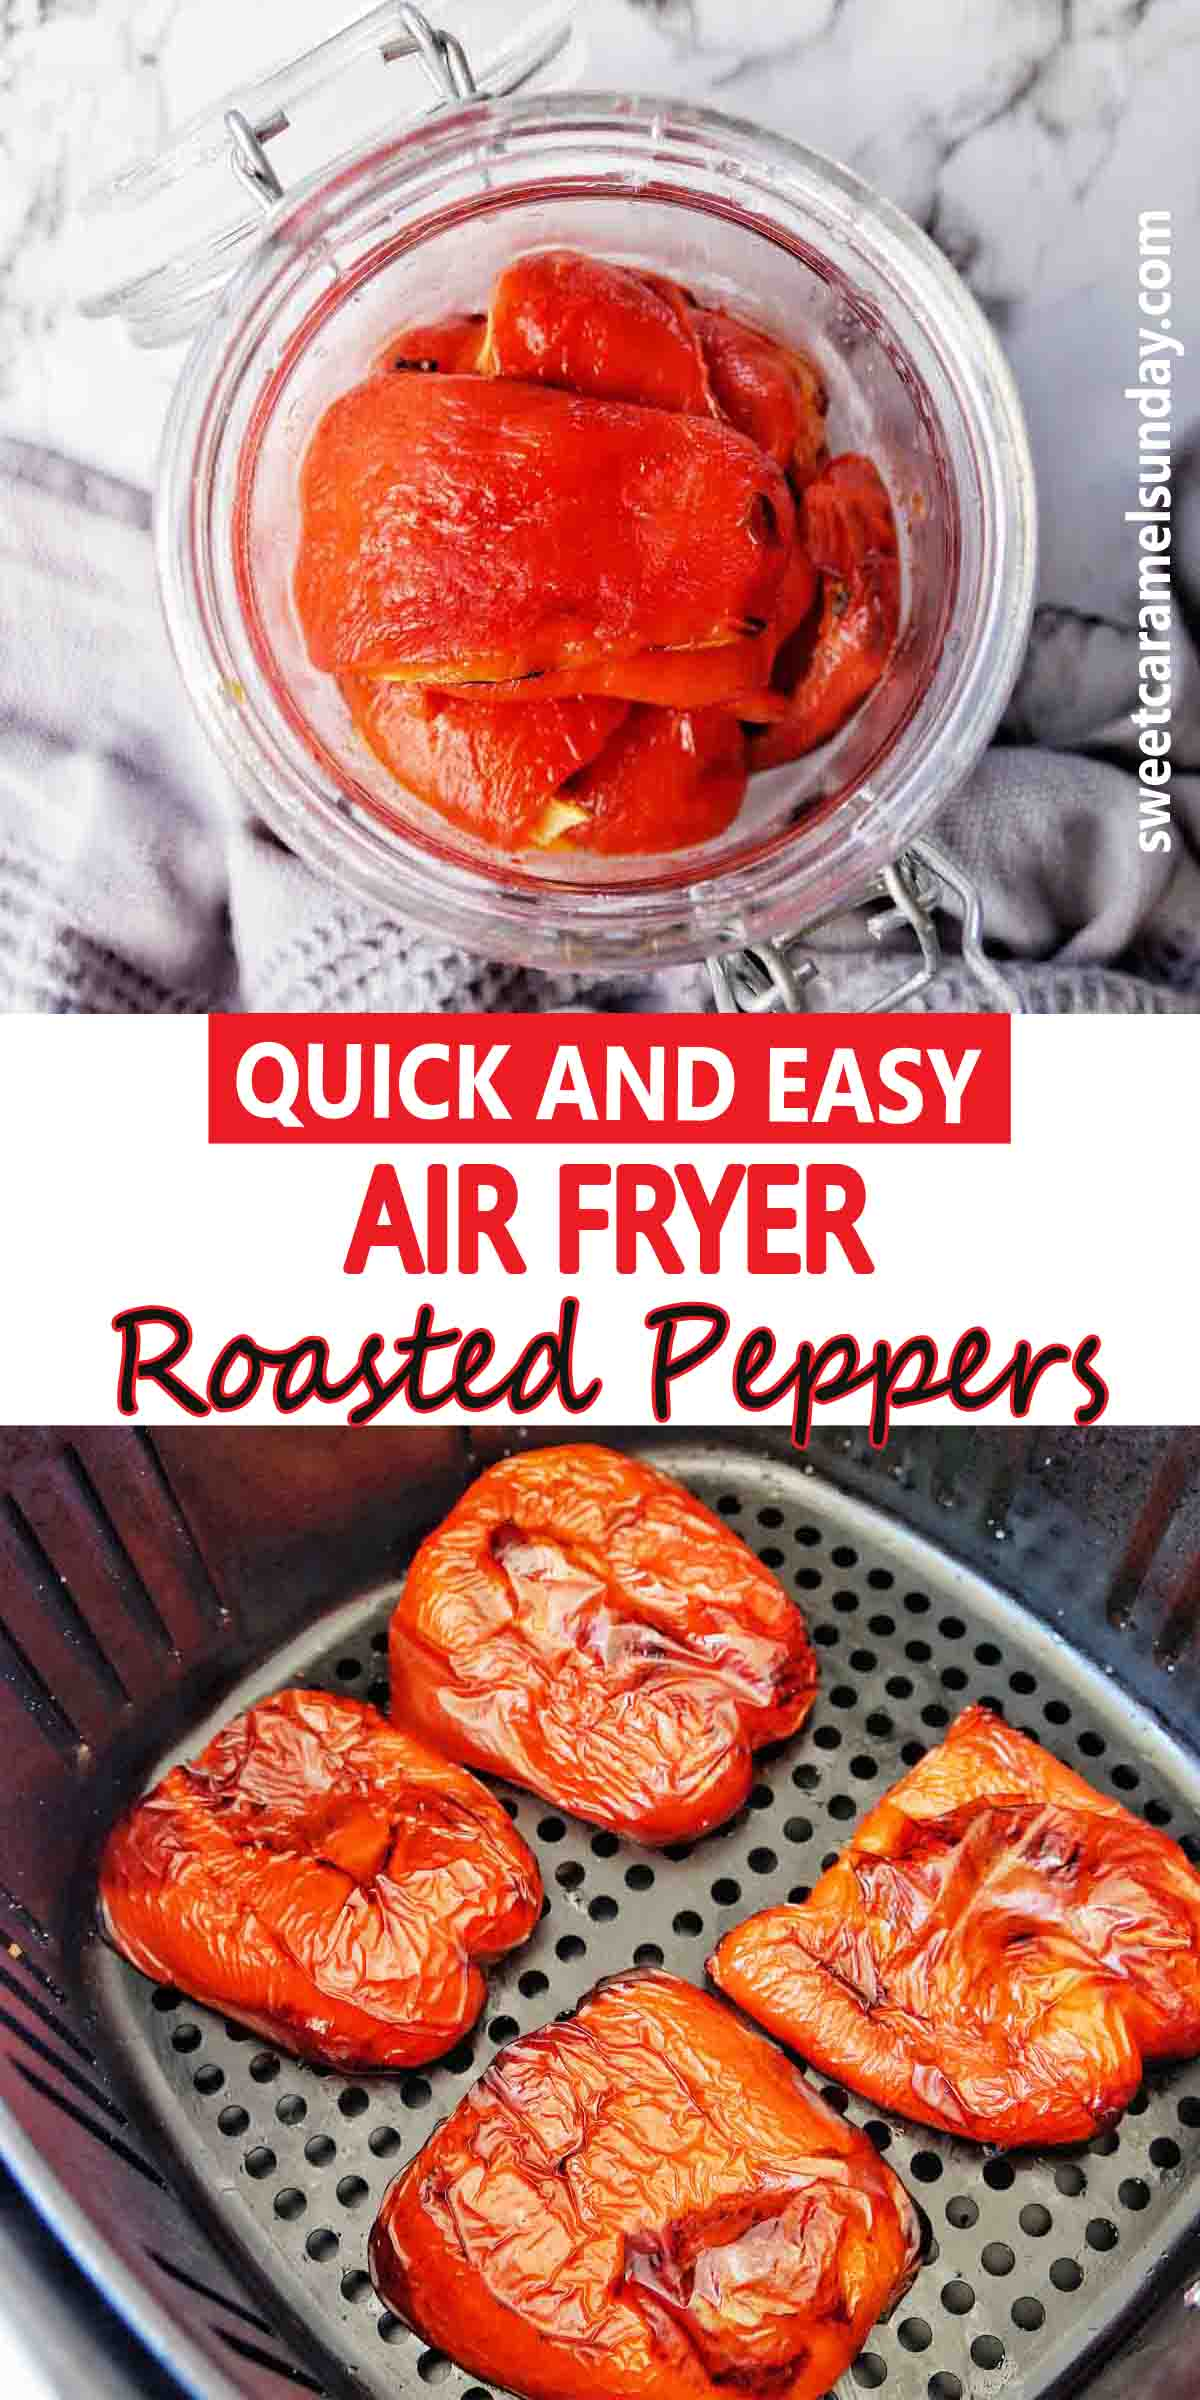 Air Fryer Roasted Peppers with text lablel